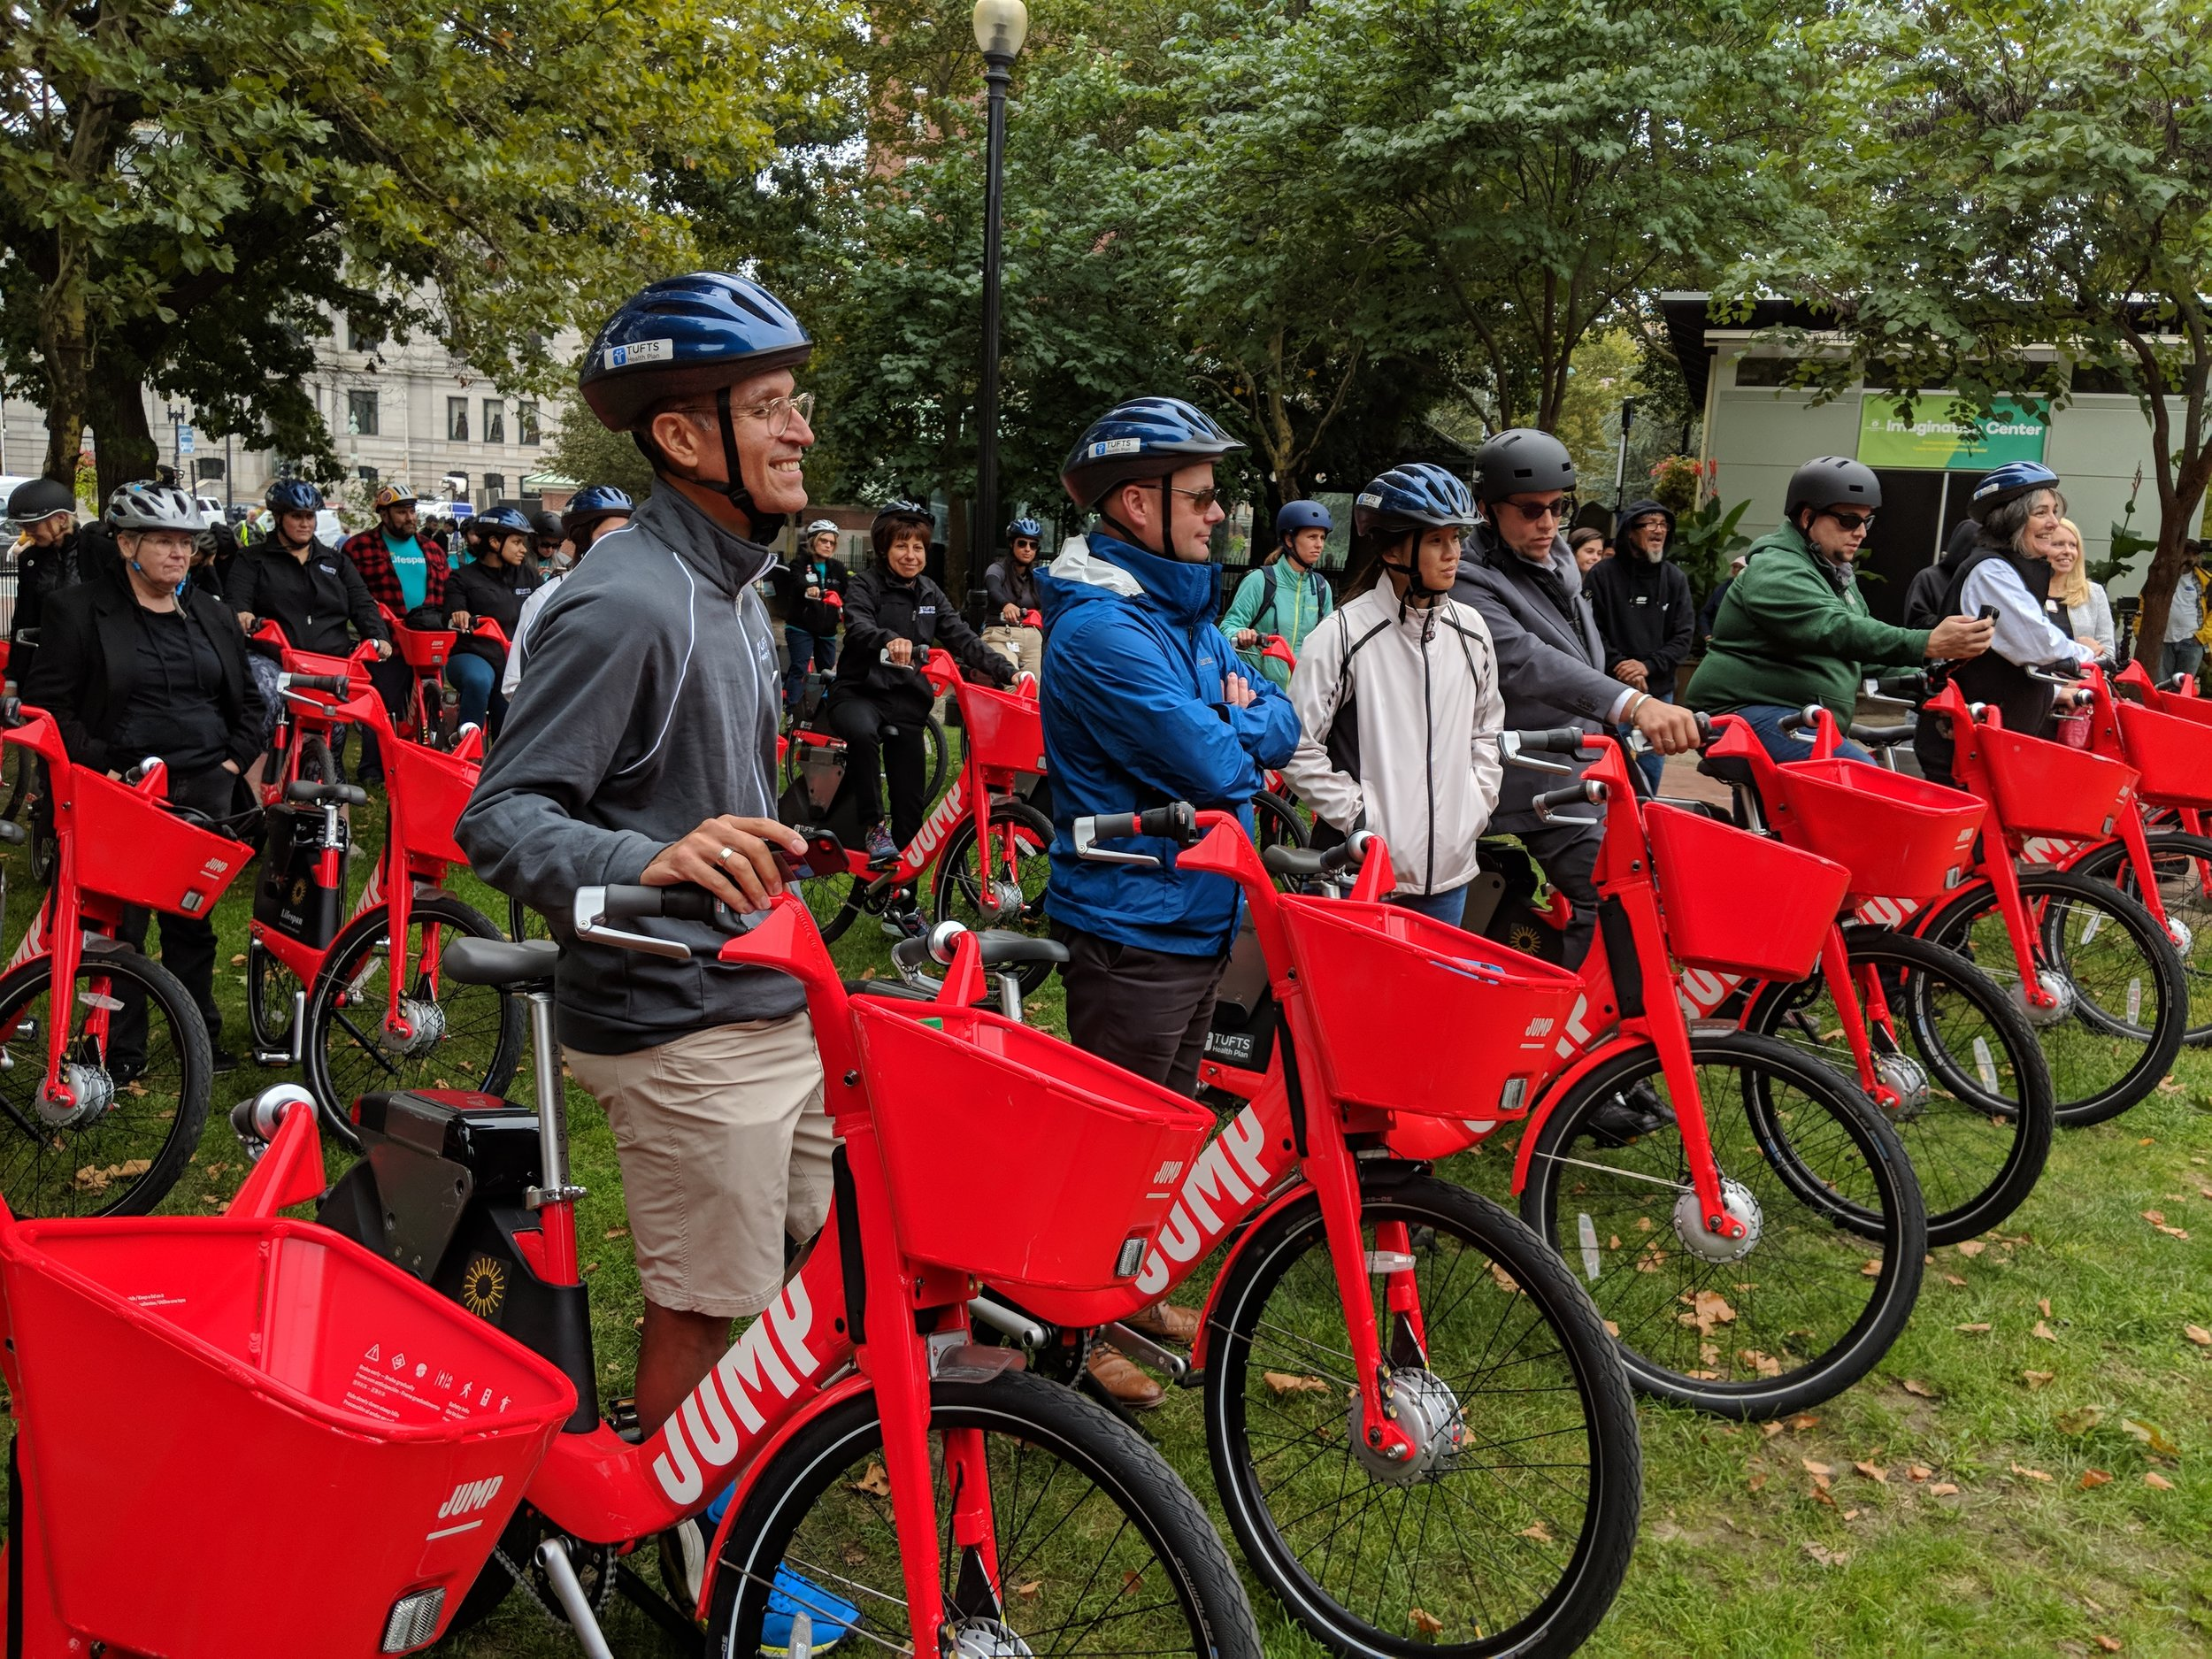 Some 50 riders joined a 2-mile ceremonial ride through downtown Providence to celebrate the launch of JUMP bike-sharing program. (Tim Faulkner/ecoRI News)